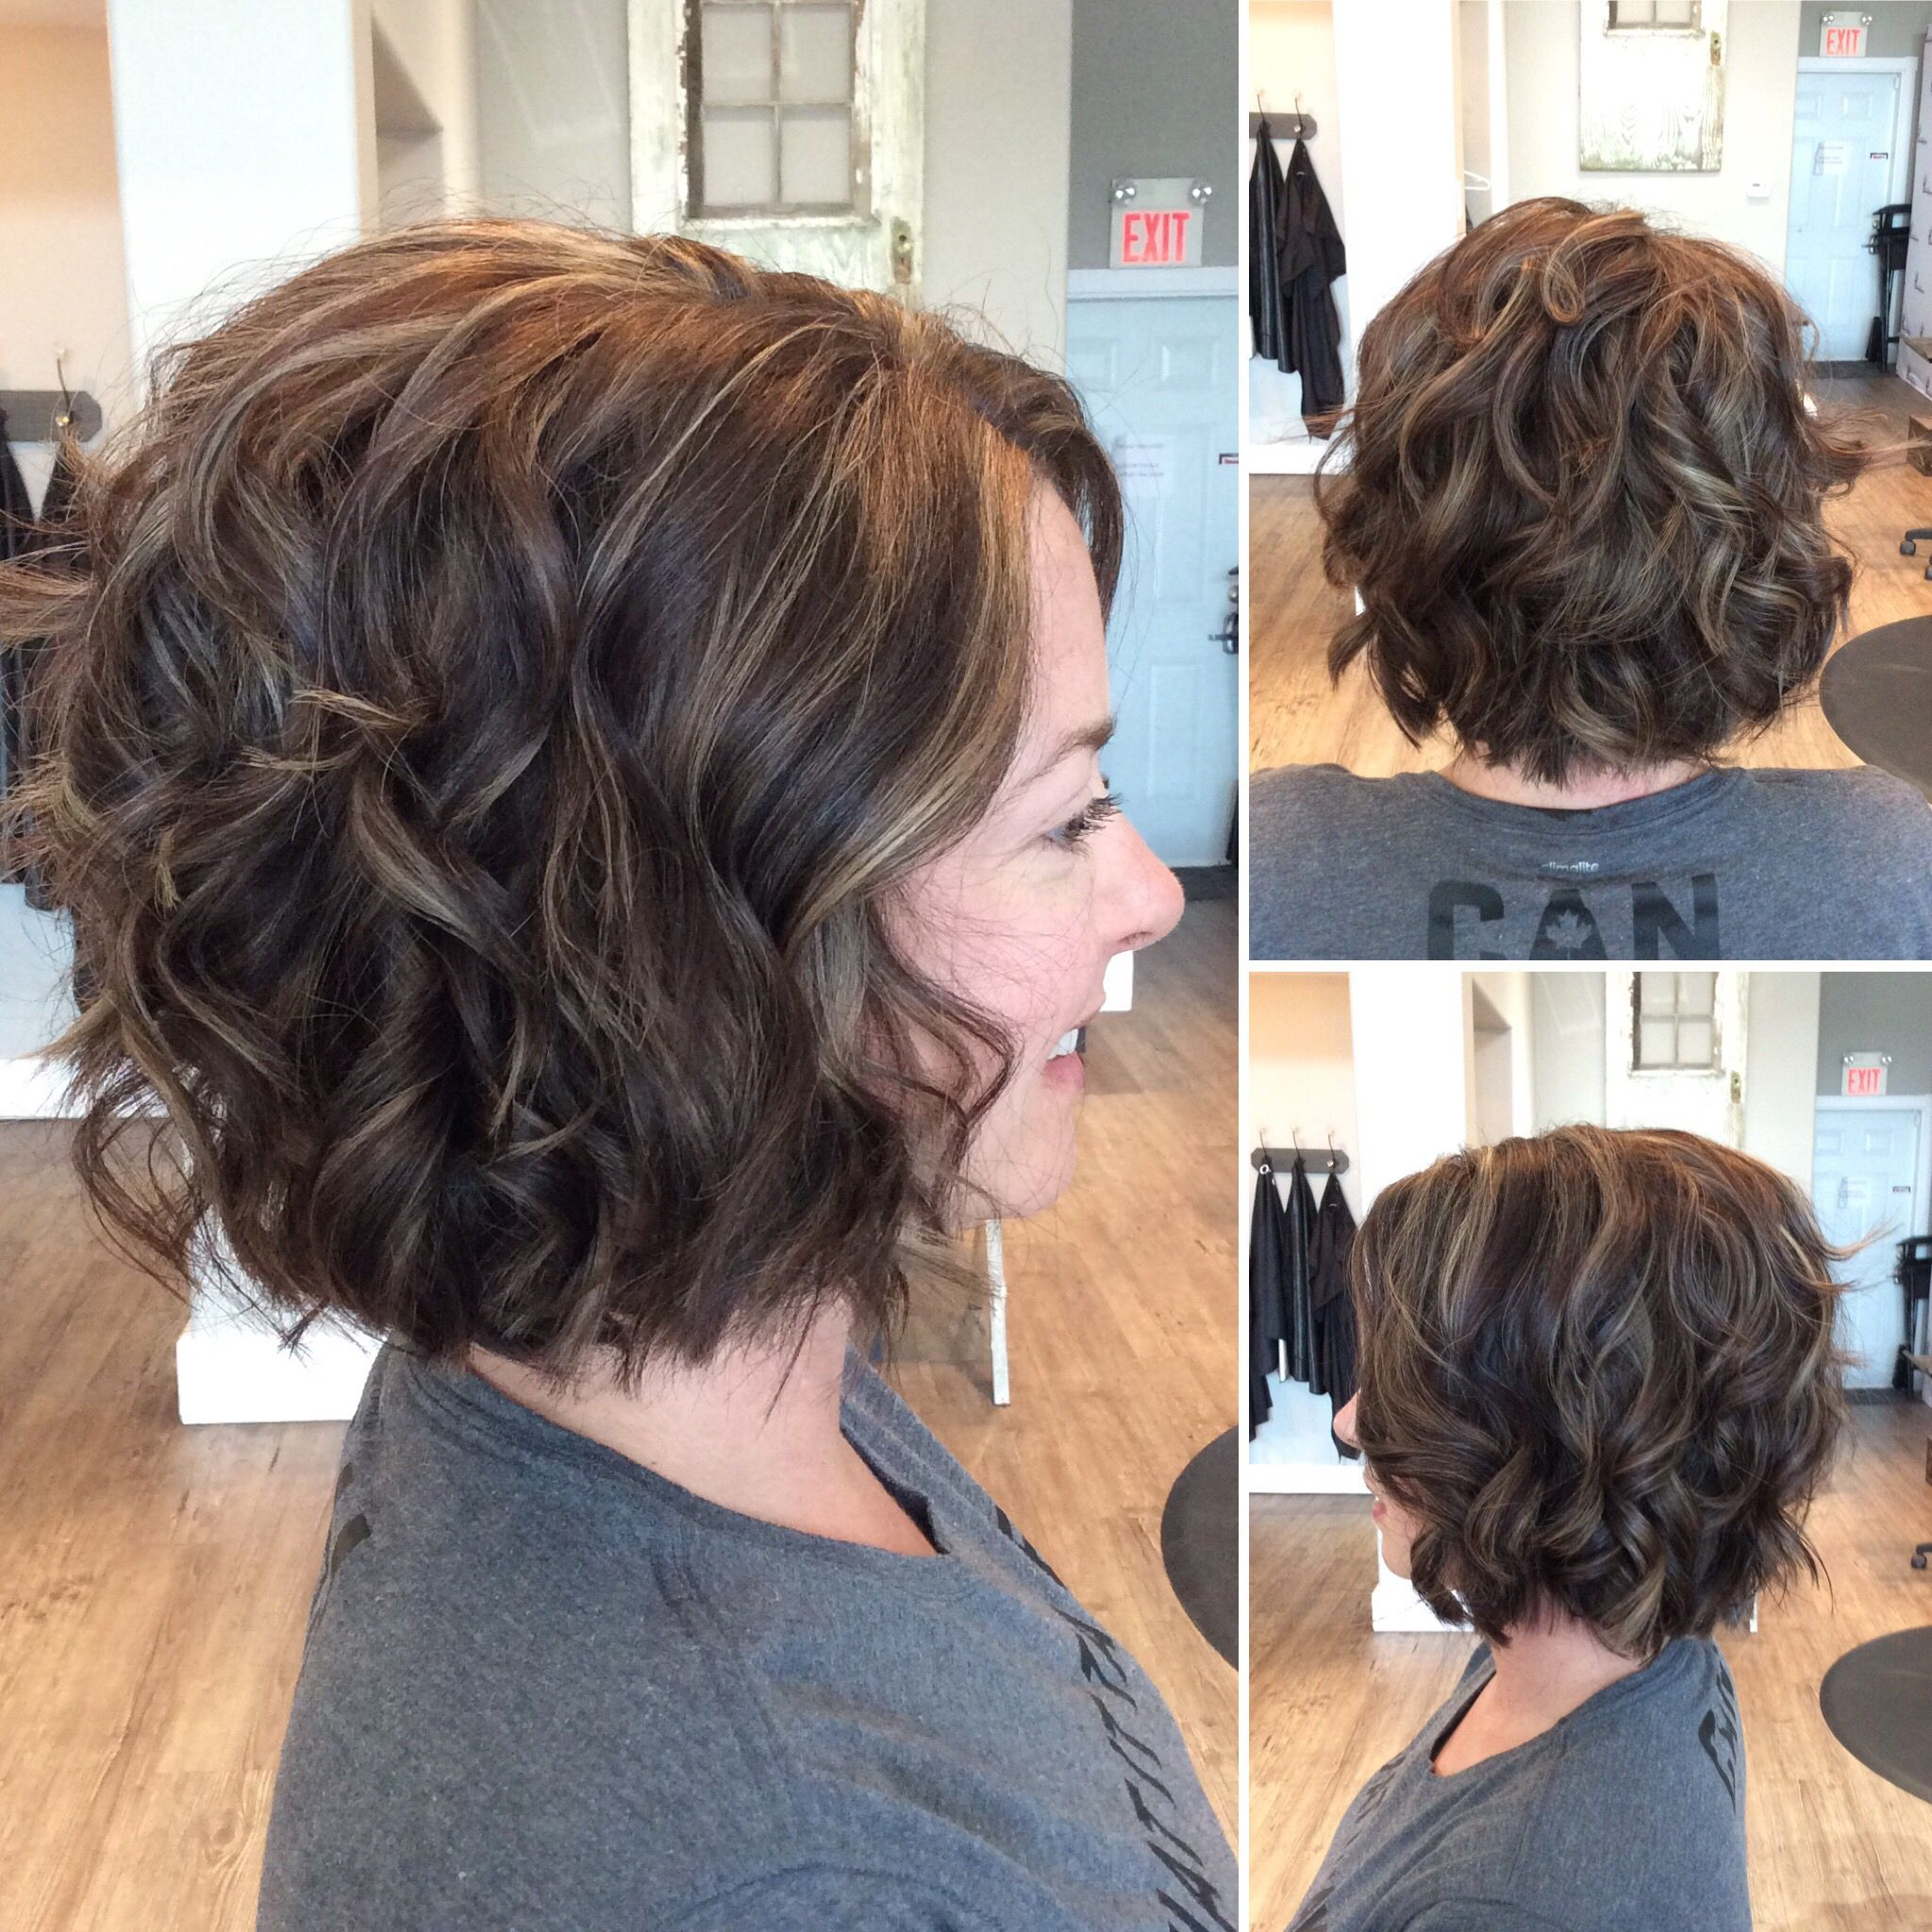 Brown ash bob with caramel highlights. Hair by @leahatstraightup | Short  curly hairstyles for women, Thick hair styles, Curly bob hairstyles